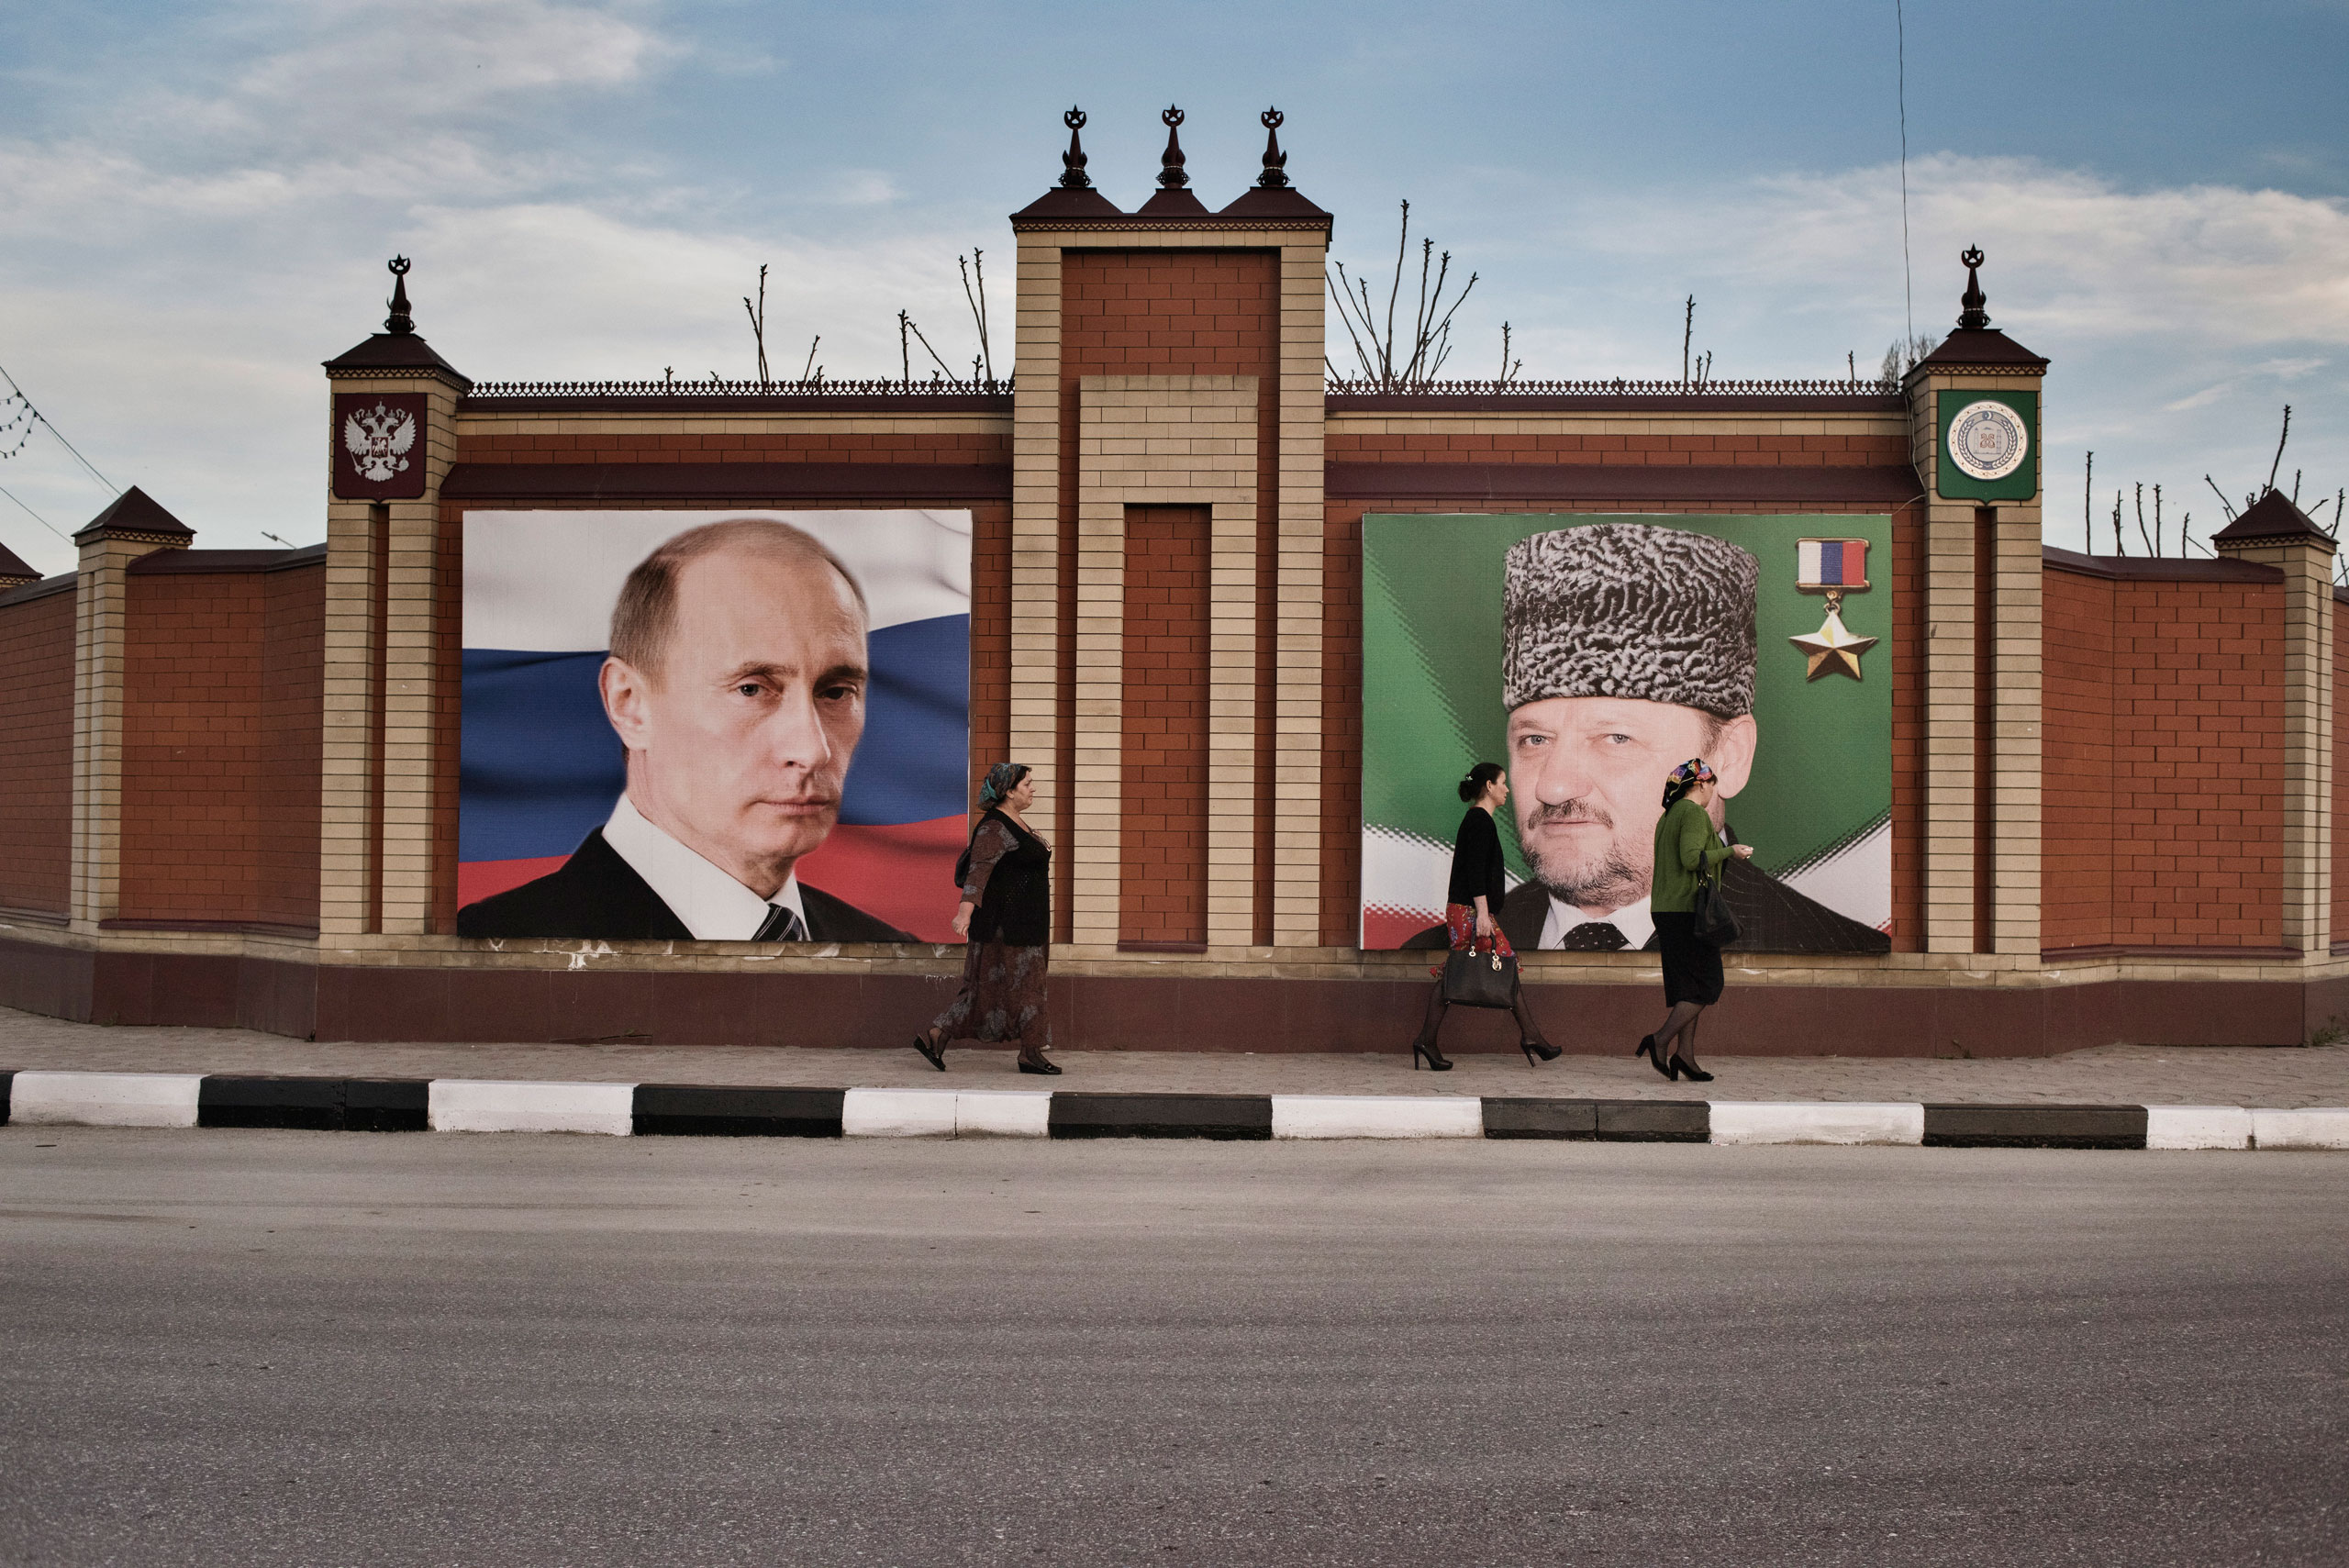 Women walk past a portrait of Russian President Vladimir Putin and the late President of Chechnya, Akhmad Kadyrov, the father of Chechnya's current leader, Ramzan Kadyrov, Throughout the region, portraits of Putin and the Kadyrovs are plastered on the facades of buildings and along highways, Grozny, Chechnya, April 2015.